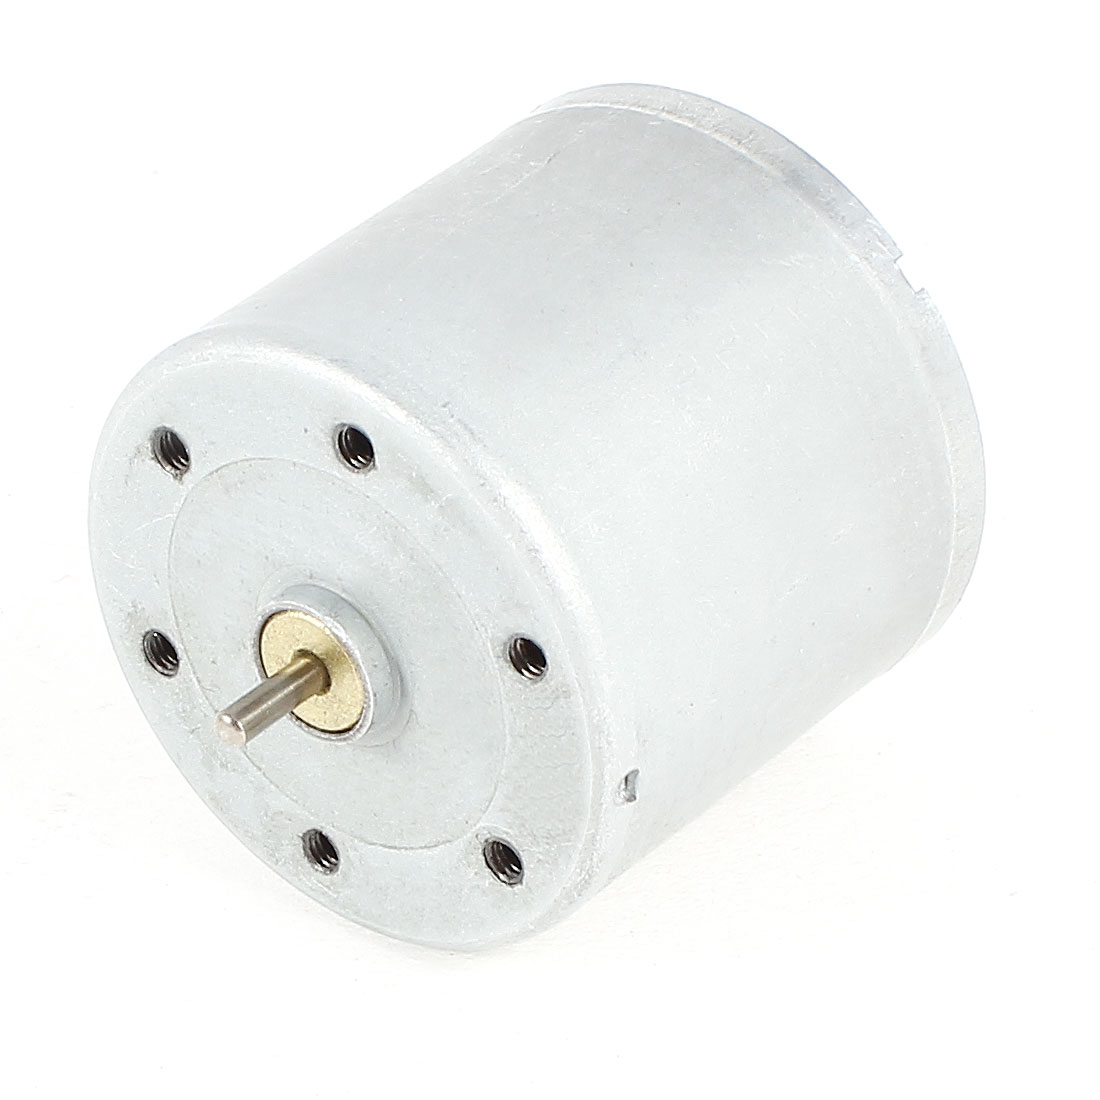 DC 12V 3000RPM High Speed 2mm Diameter Axle Cylinder Shaped Micro Electric Motor